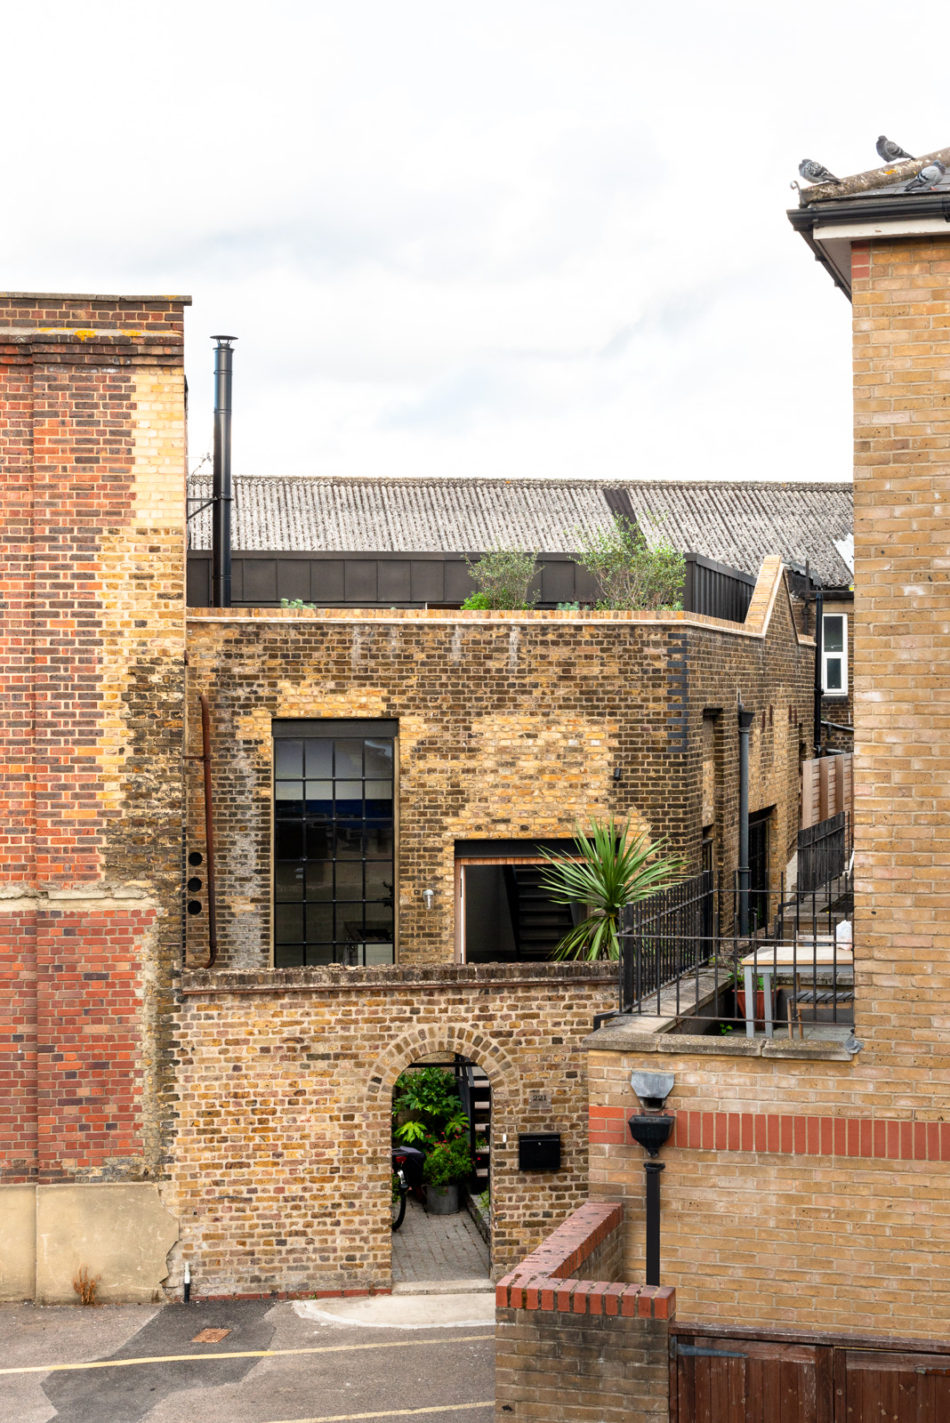 converted gin distillery whitechapel